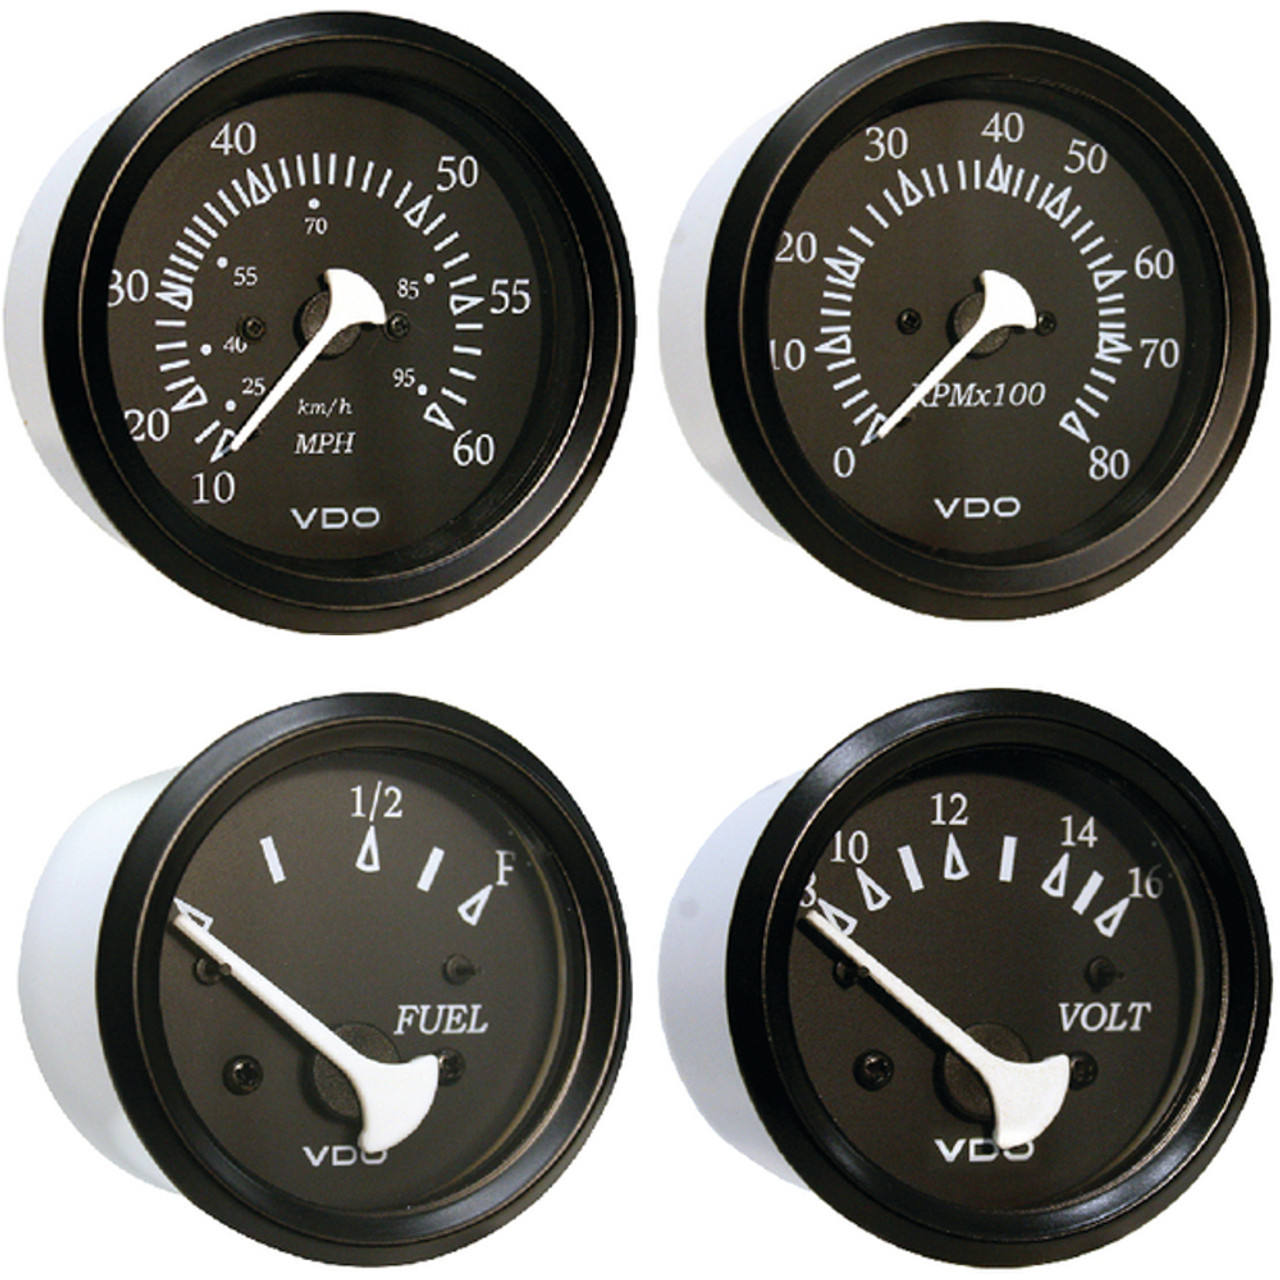 White Faced Johnson and Evinrude Outboard Trim Gauge with Chrome Bezel for Boats